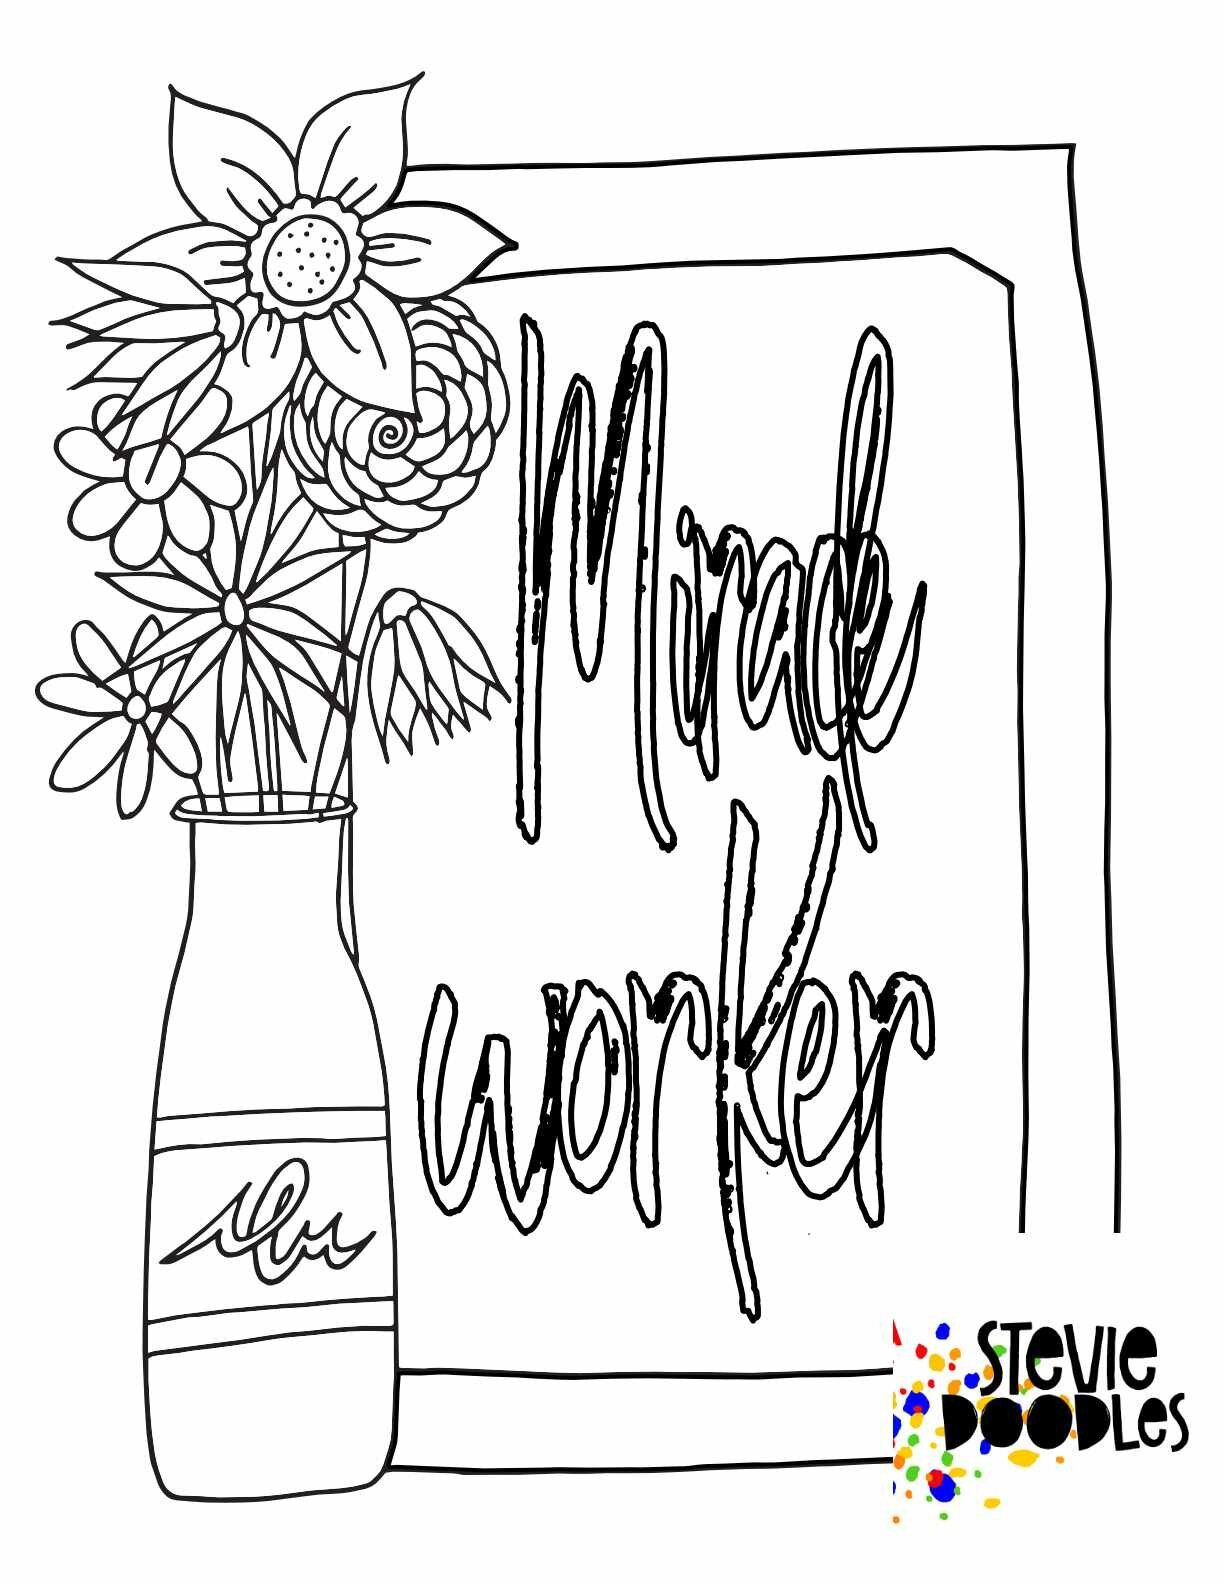 3 Free Coloring Pages Way Maker Miracle Worker Promise Keeper Stevie Doodles Free Coloring Pages Christian Coloring Bible Verse Coloring